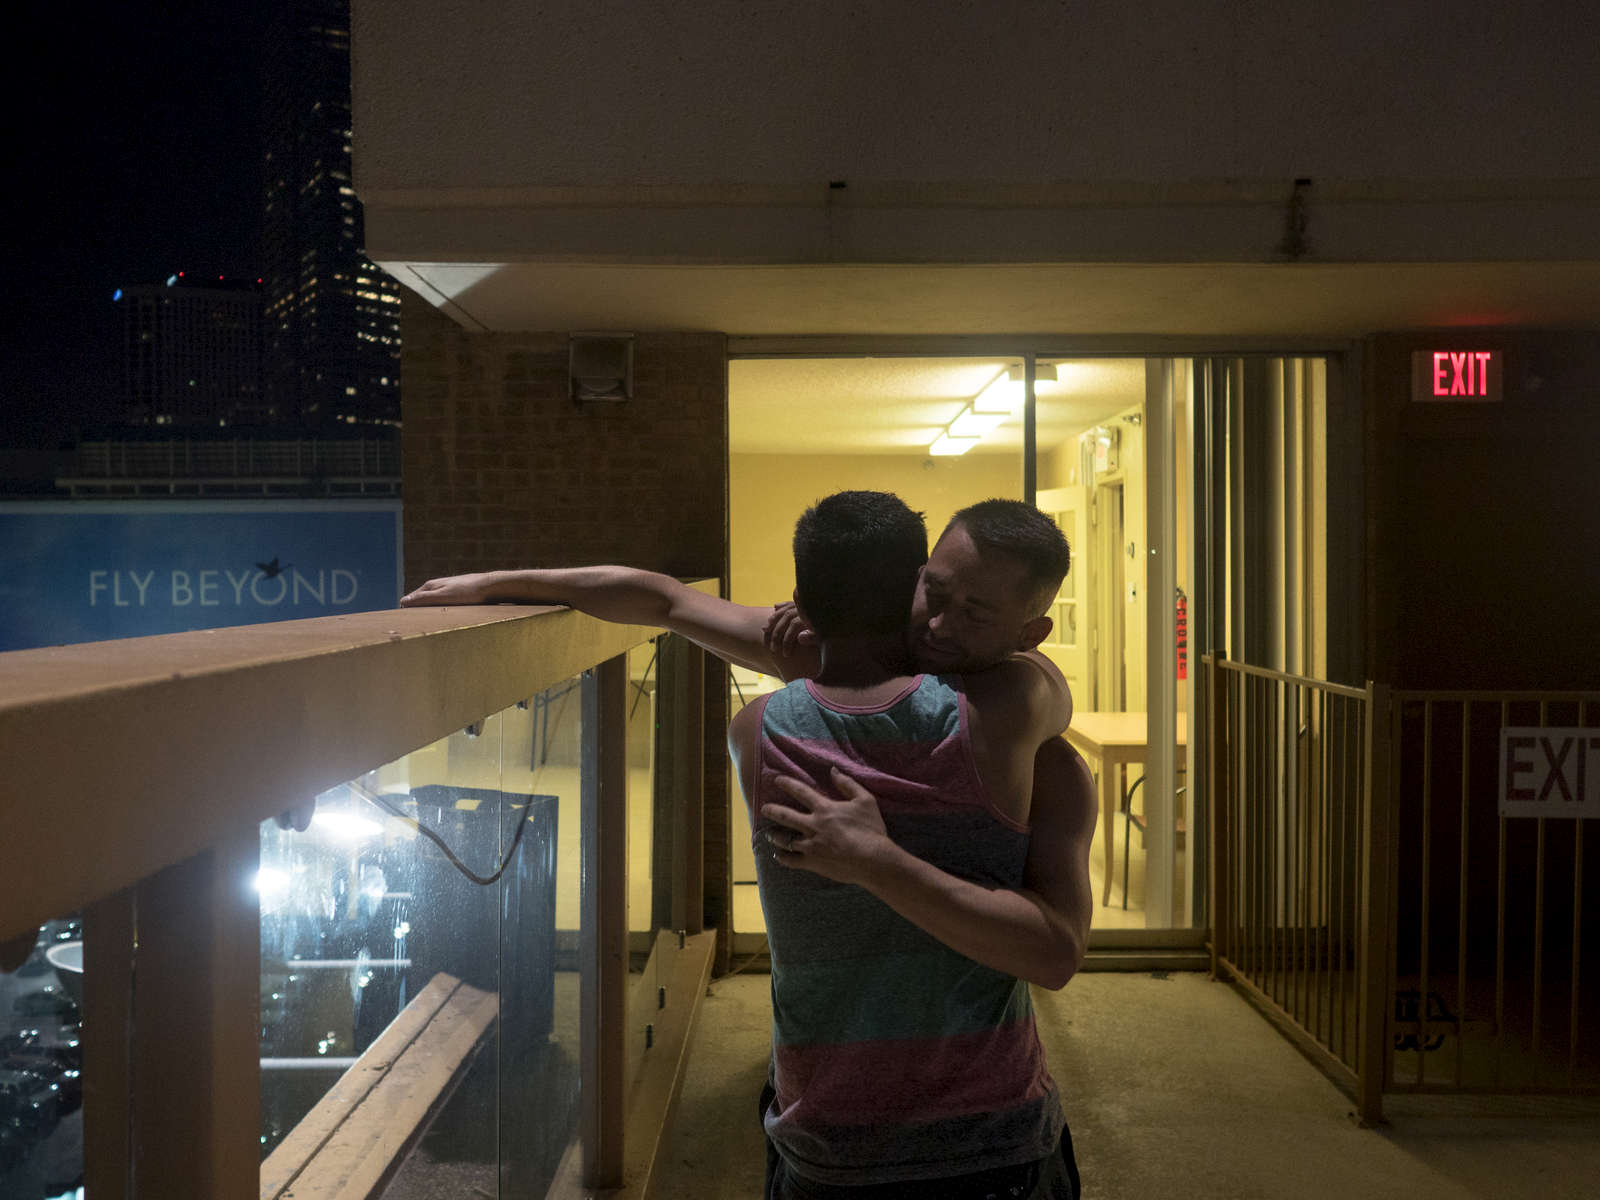 A same sex couple embrace after agreeing to get married; same-sex marriage became a legal right across America on the 27th June 2015.Dallas is a major city in Texas and is the largest urban center of the fourth most populous metropolitan area in the United States. The city ranks ninth in the U.S. and third in Texas after Houston and San Antonio. The city's prominence arose from its historical importance as a center for the oil and cotton industries, and its position along numerous railroad lines.For two weeks in the summer of 2015, photographer Peter Dench visited Dallas to document the metroplex in his epic reportage, DENCH DOES DALLAS.Photographed using an Olympus E-M5 Mark II©Peter Dench/Getty Images Reportage